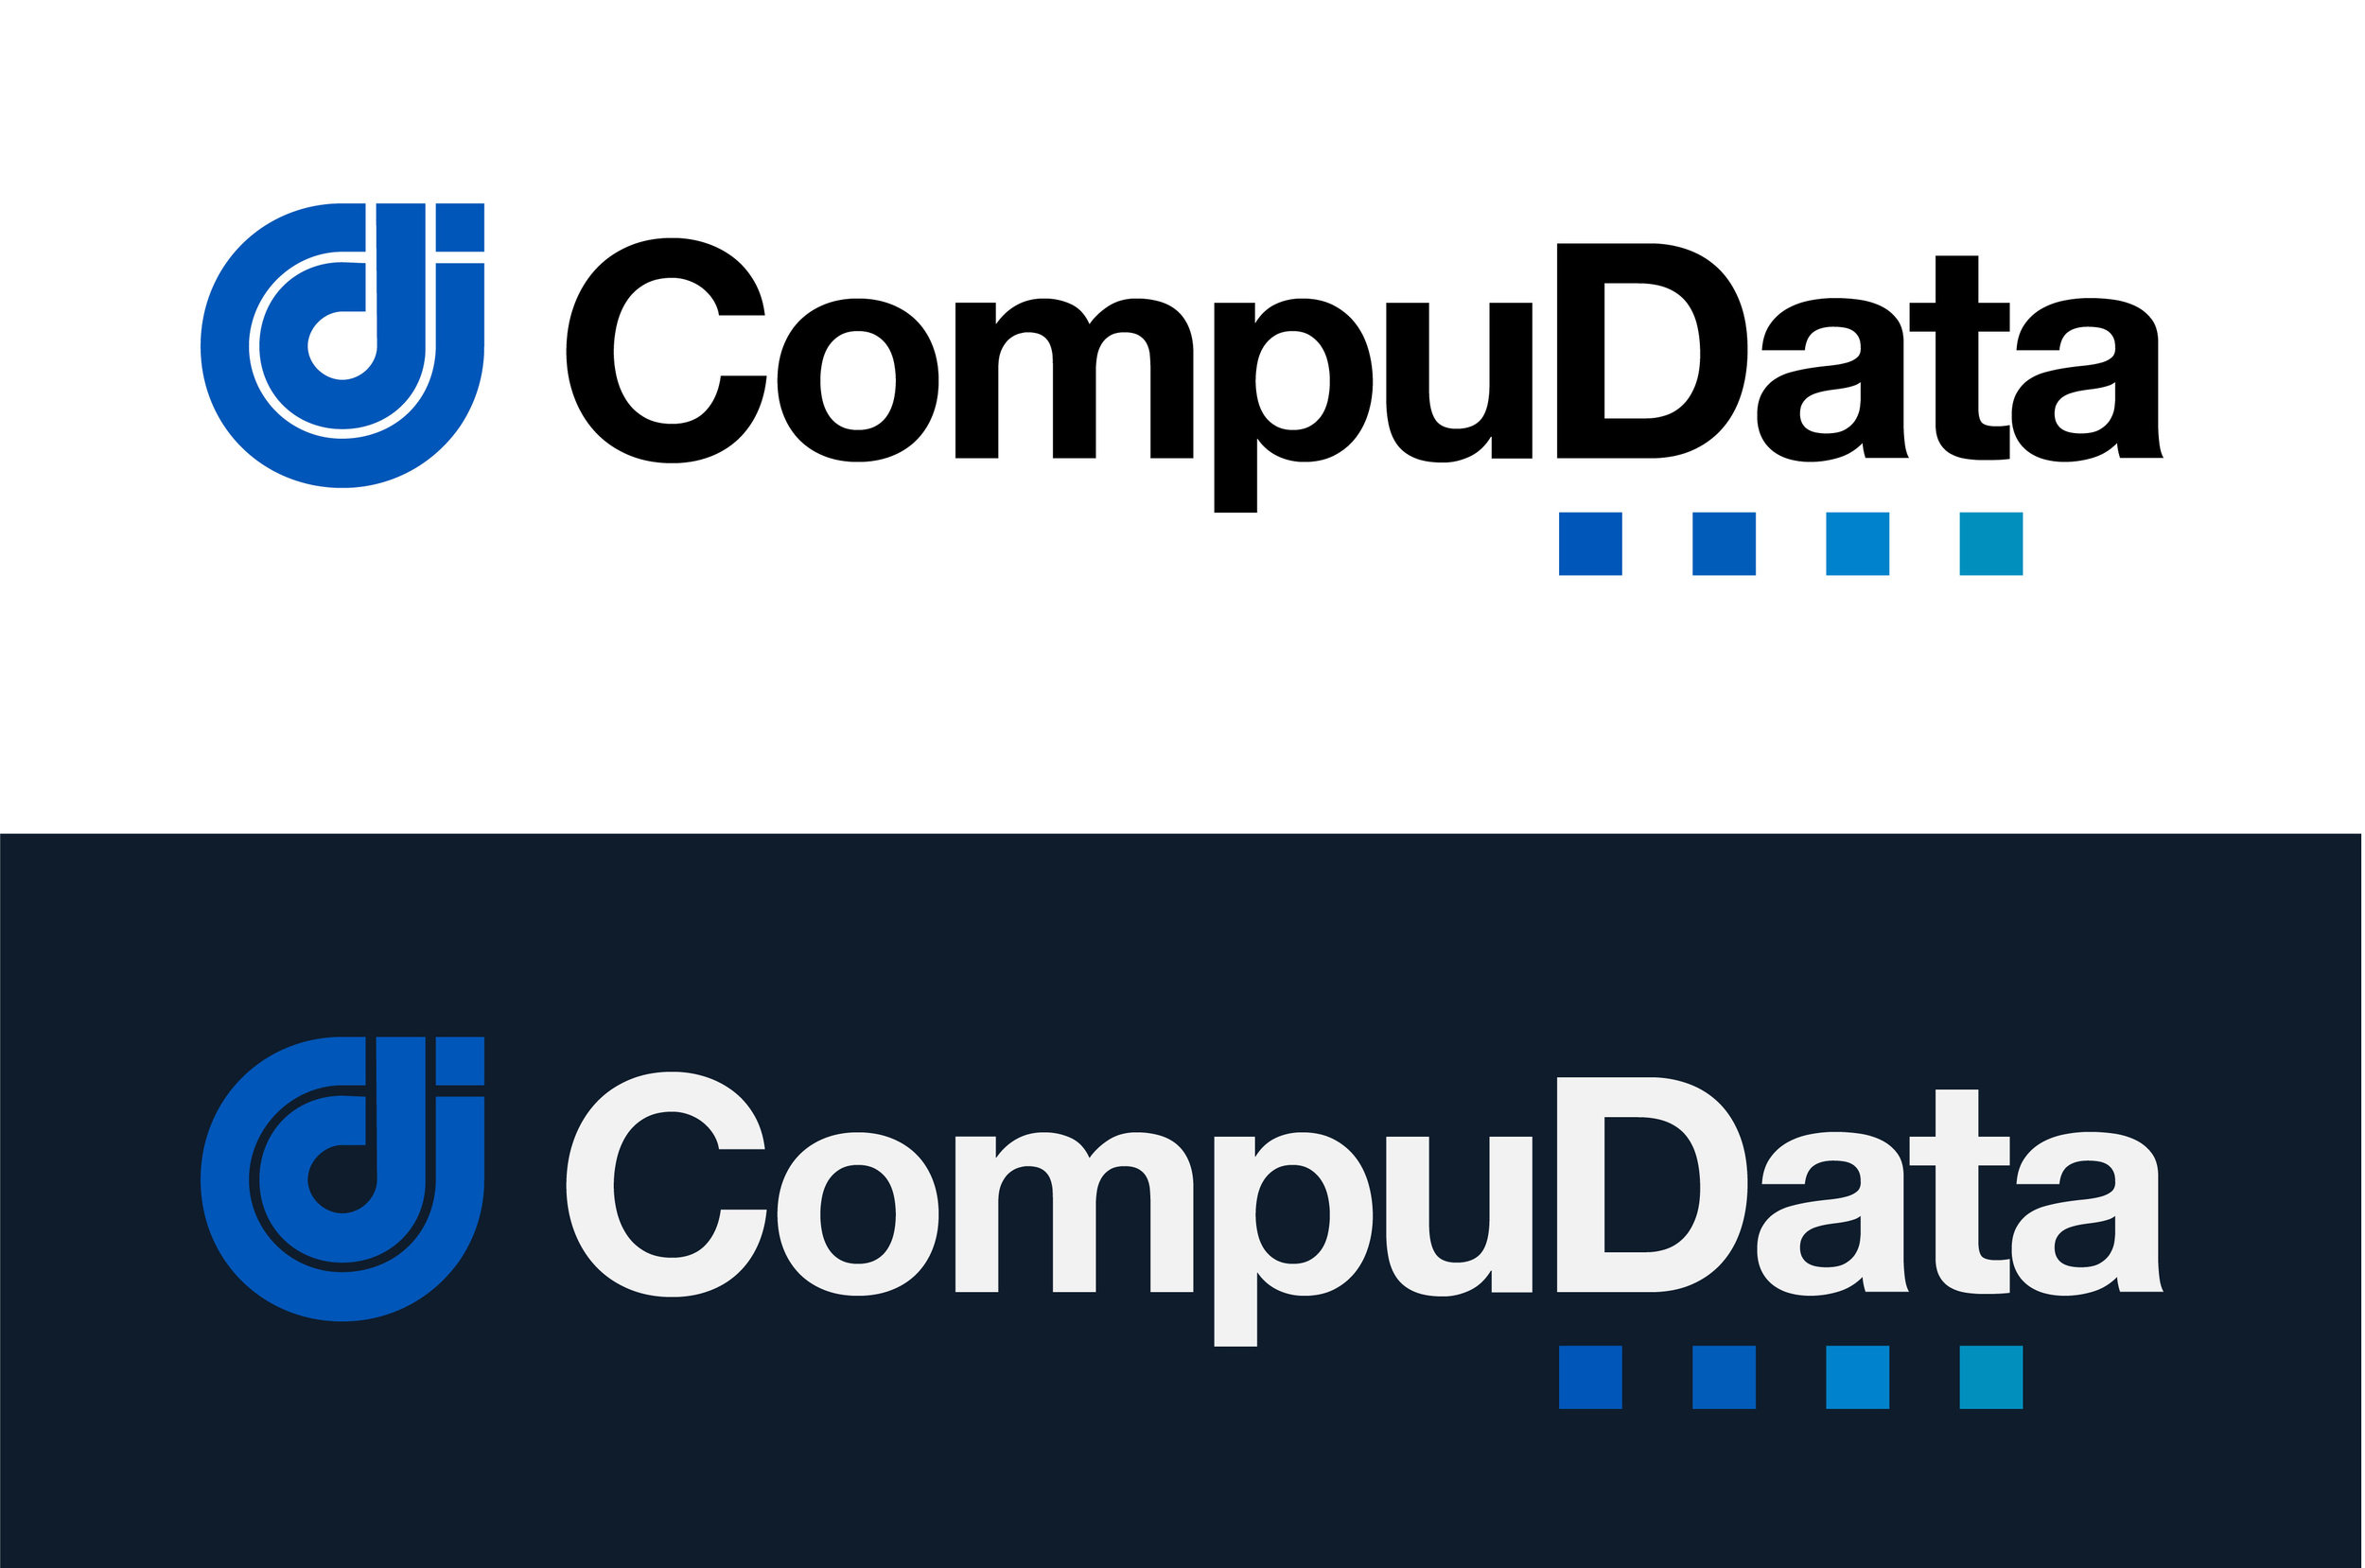 CompuData - Wordmark Update - Color and Typeface-04.jpg